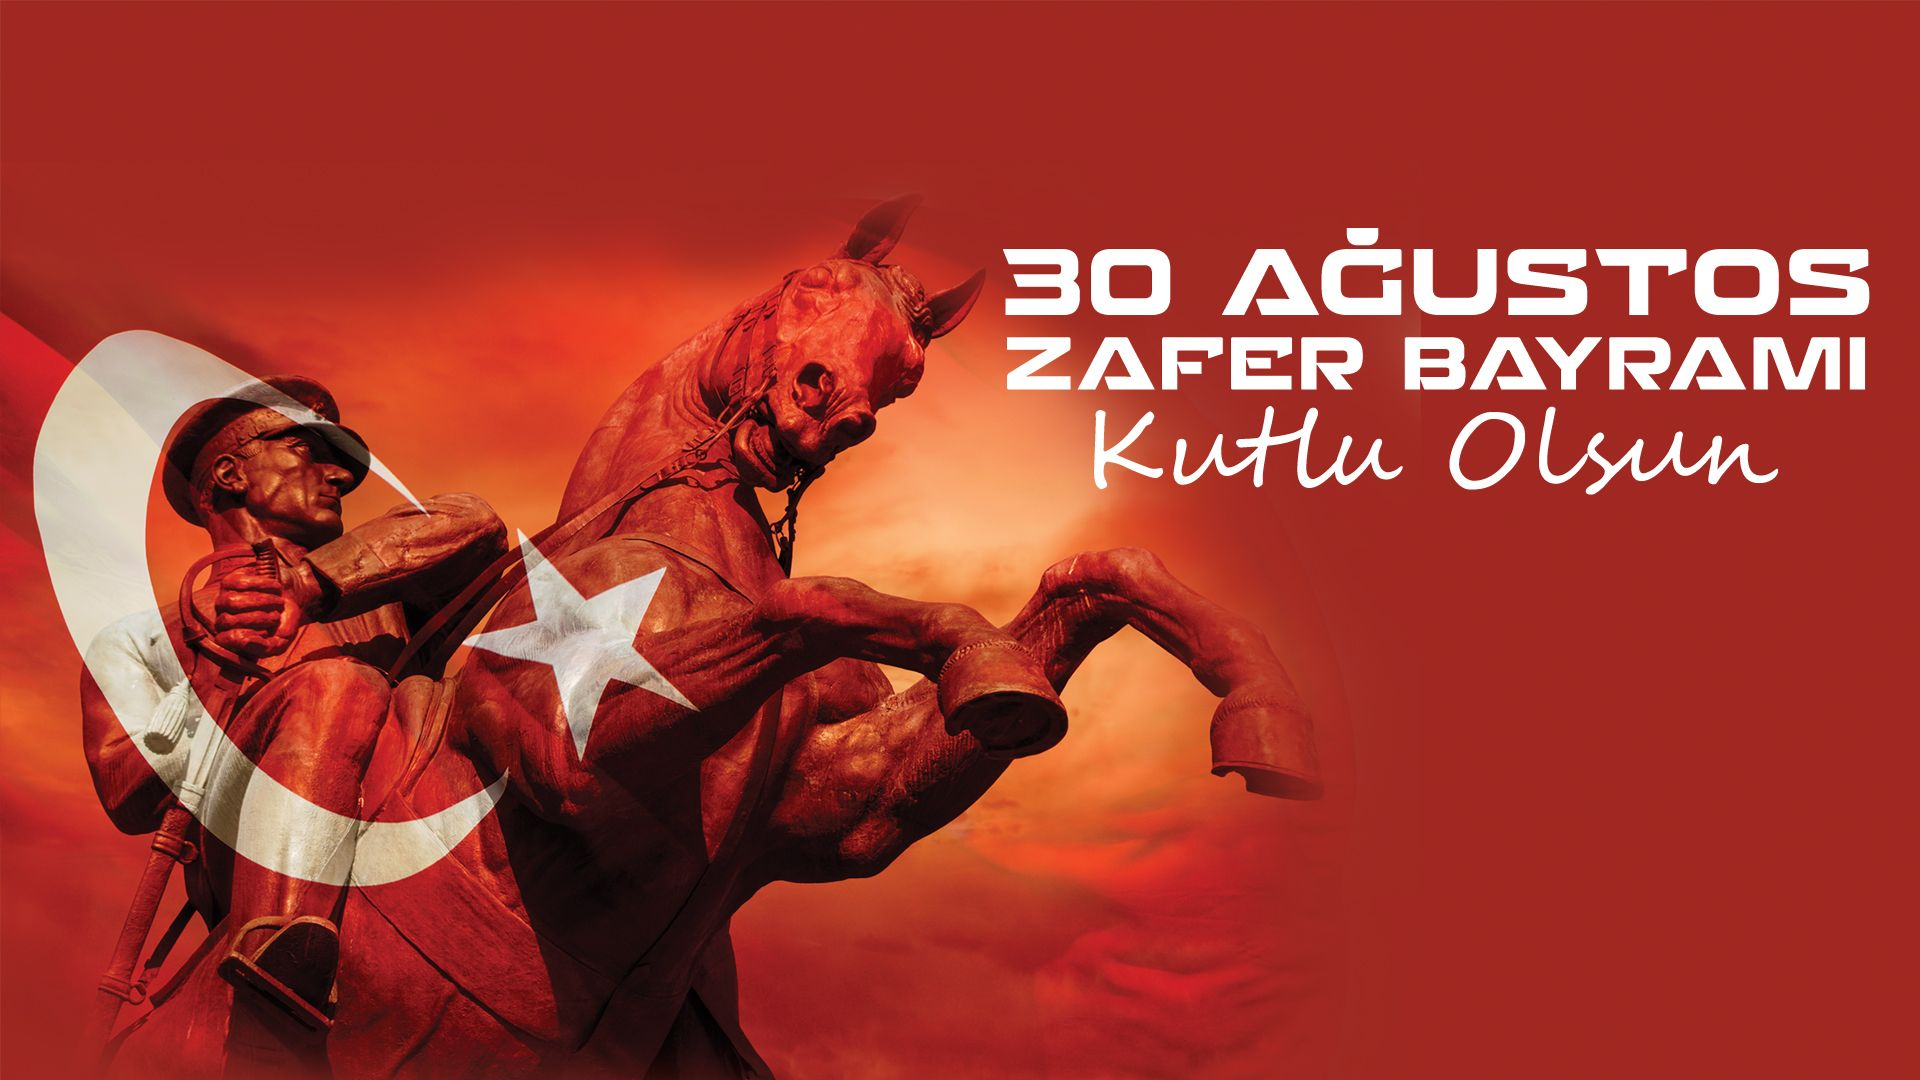 Zafer Bayrami (Victory Day)